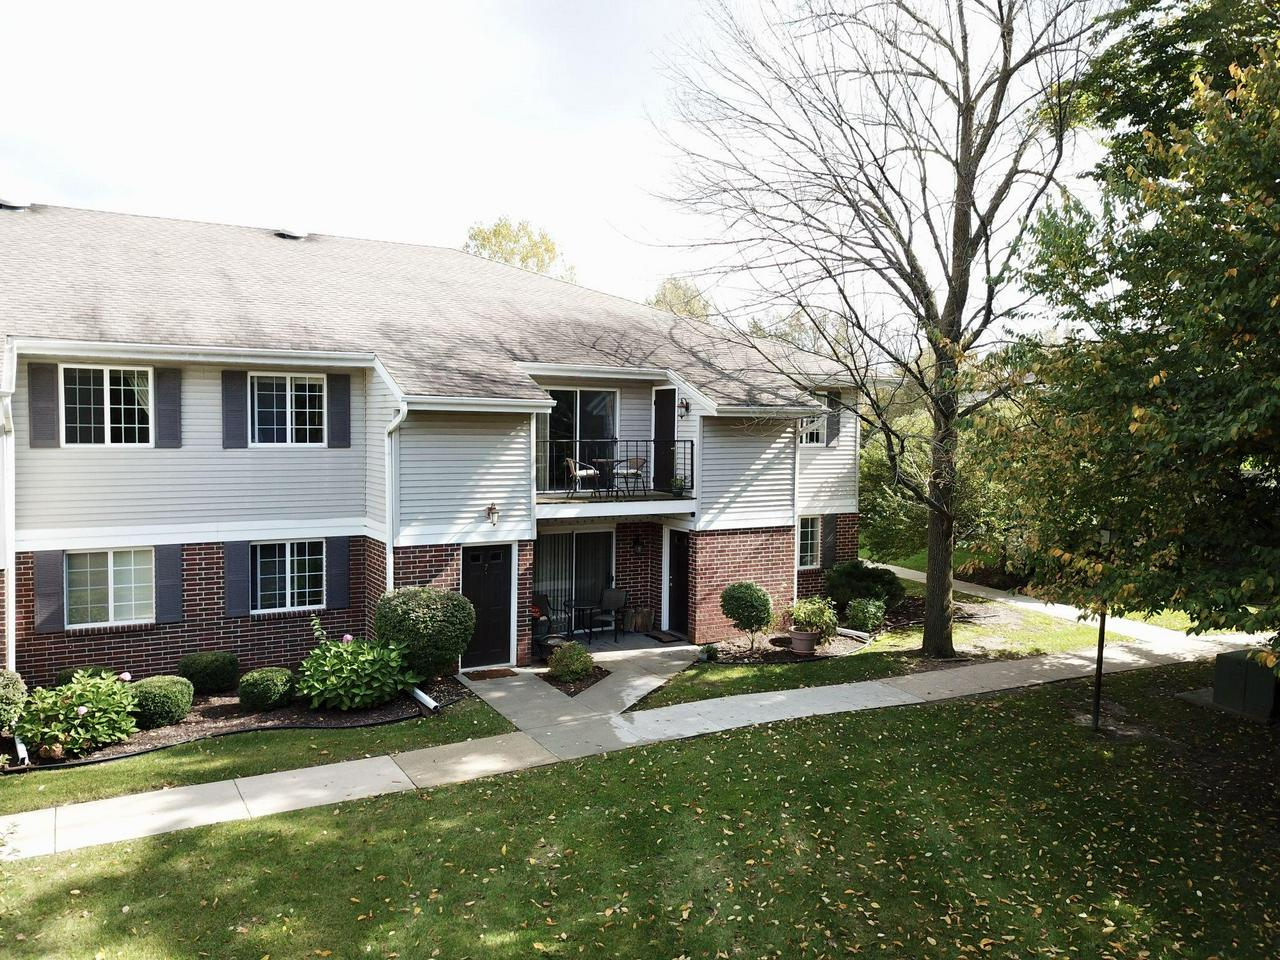 You'll fall in love with this beautiful condo situated in the highly sought after Asbury Woods.This upper unit features:  private balcony overlooking manicured green space, spacious welcoming living room with vaulted ceiling, kitchen with stainless steel appliances and loads of cabinets, two generous size bedrooms, master with private bath and walk-in closet, 2nd full bath with tub, in unit laundry, 1 car garage plus assigned parking spot, lots of storage and is pet friendly. Easy access to shopping, parks and highway. Truly a great find!